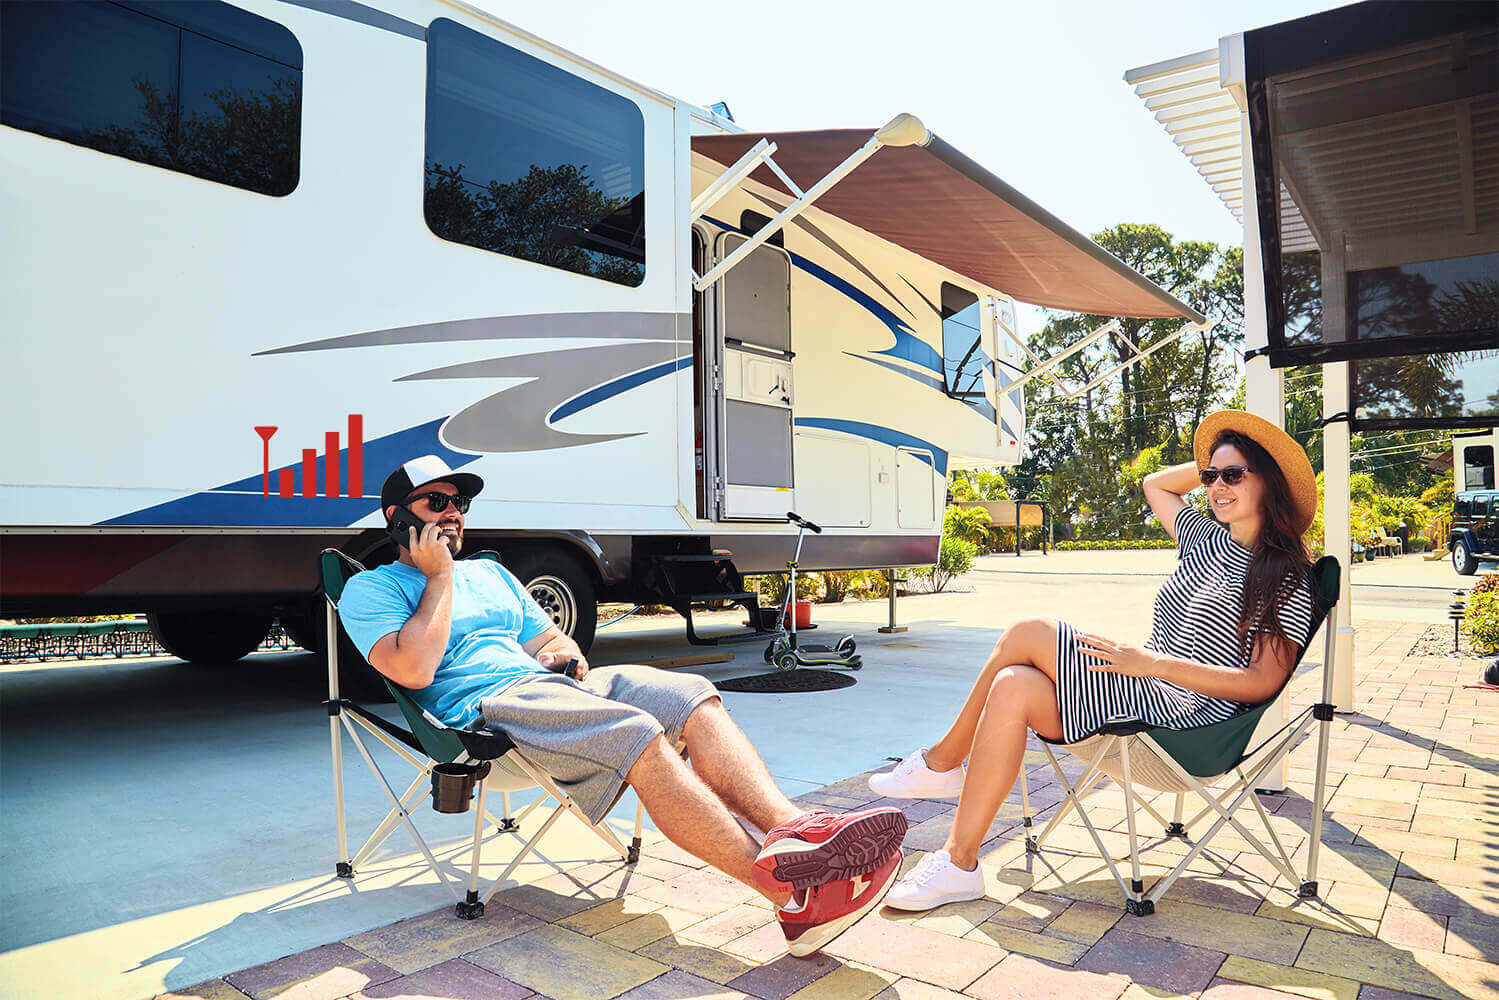 HiBoost Cell phone signal booster for RV-peace of mind at travelling